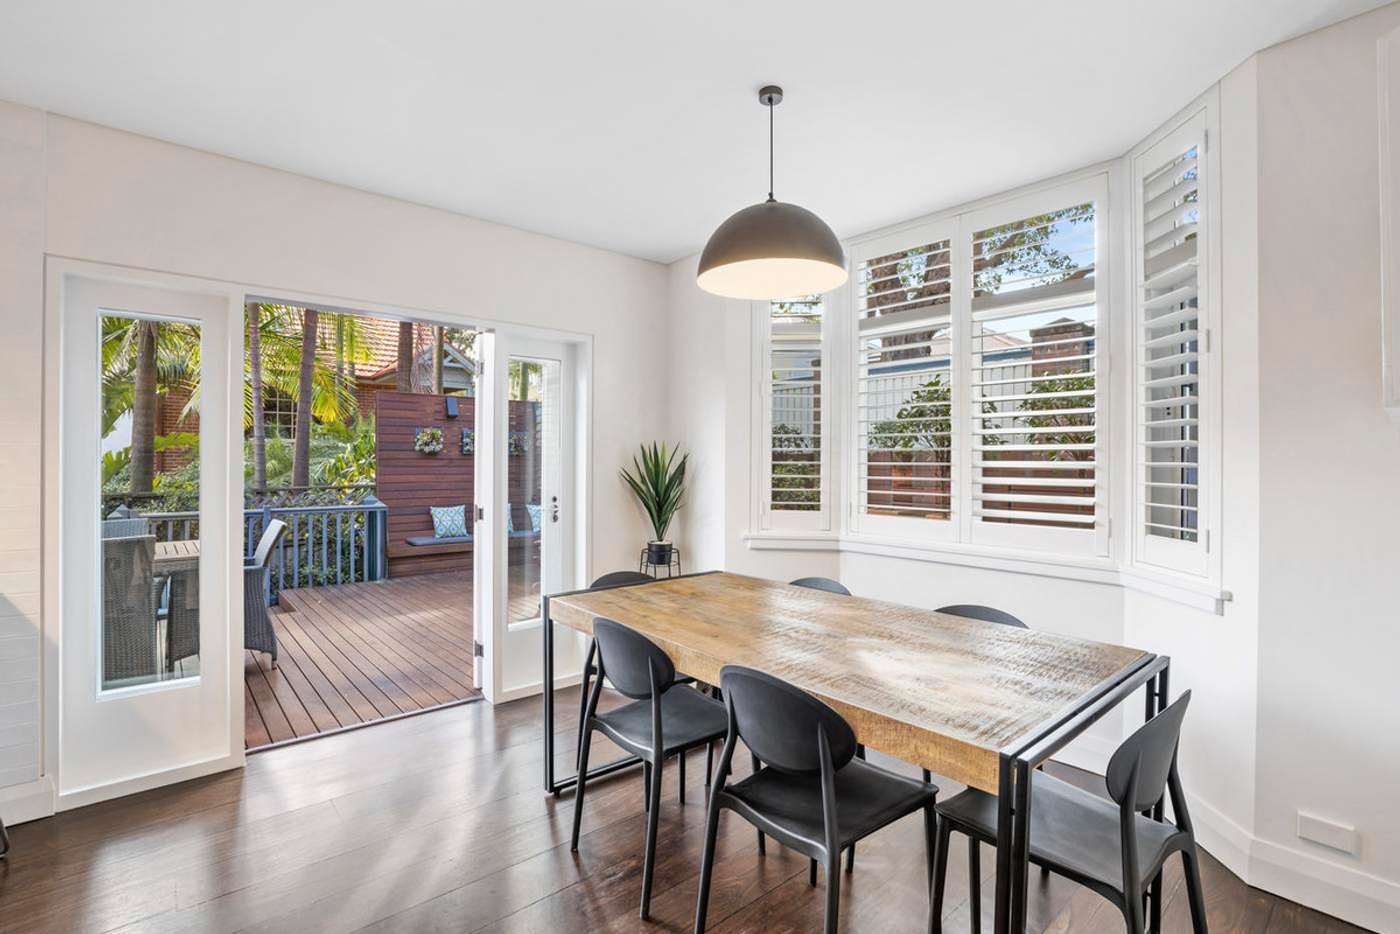 Fifth view of Homely house listing, 12A Milner Street, Mosman NSW 2088